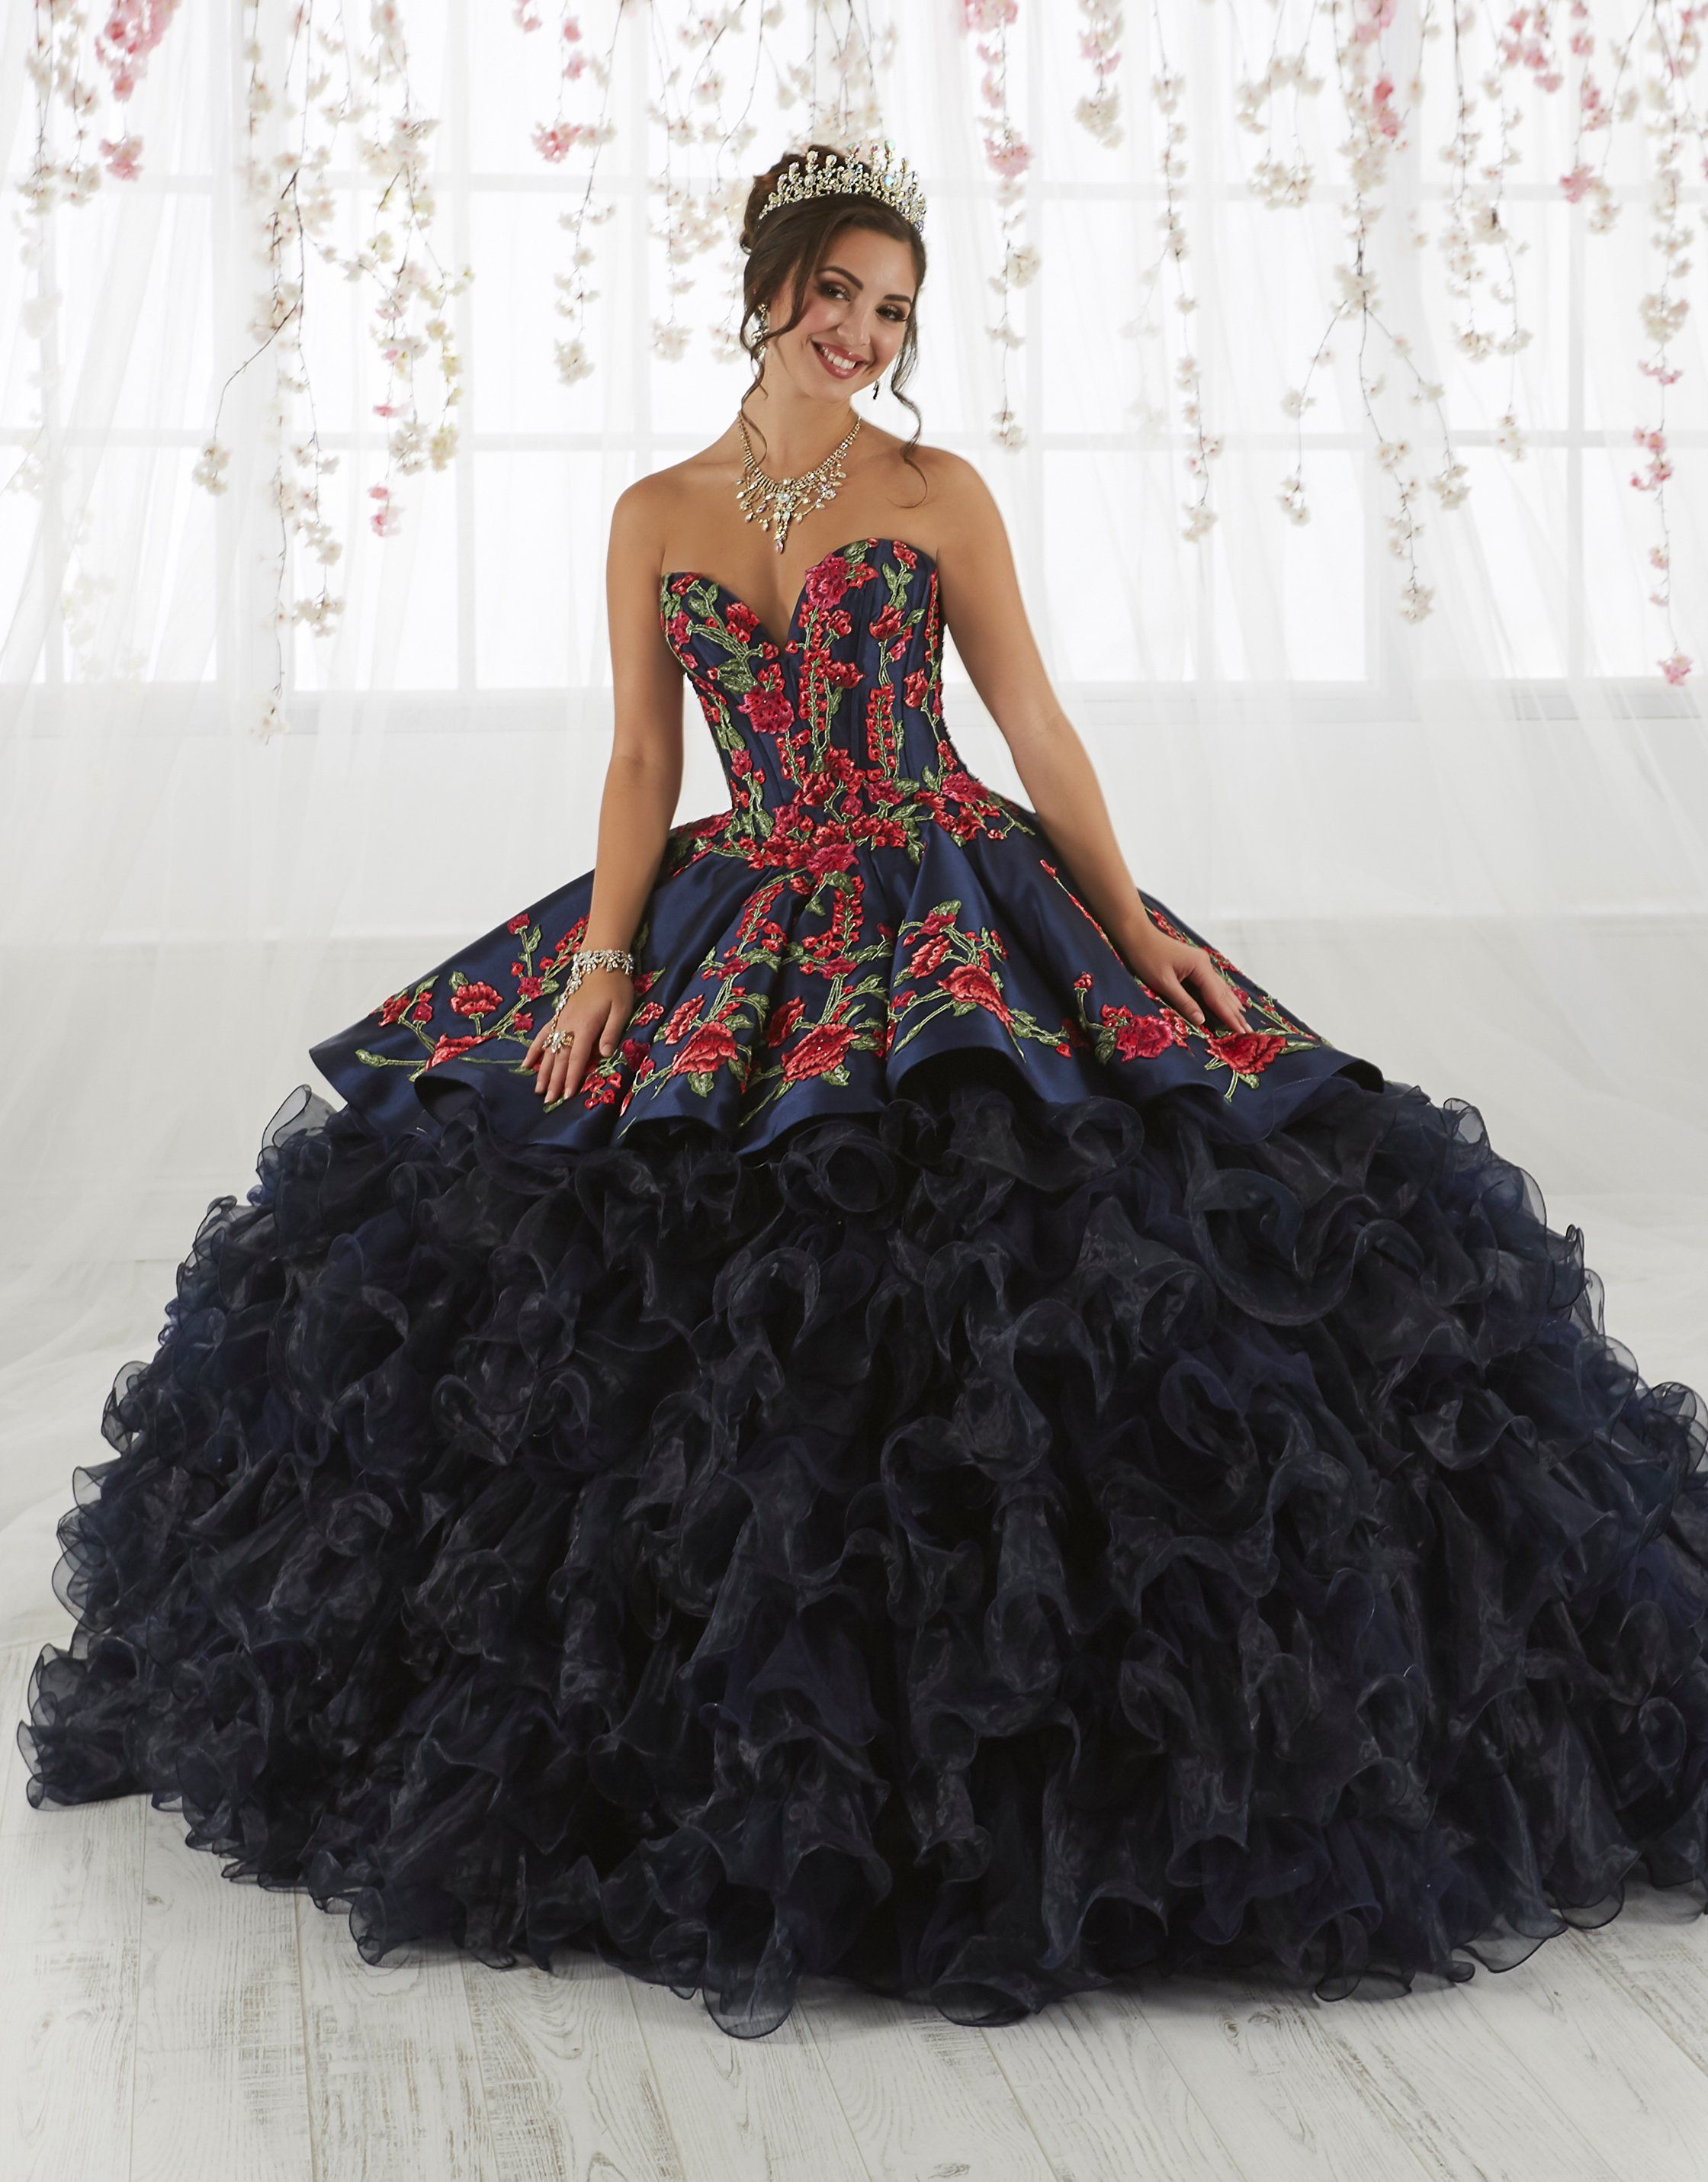 902ce6955af Rose Charro Quinceanera Dress by House of Wu 26892 in 2019 ...